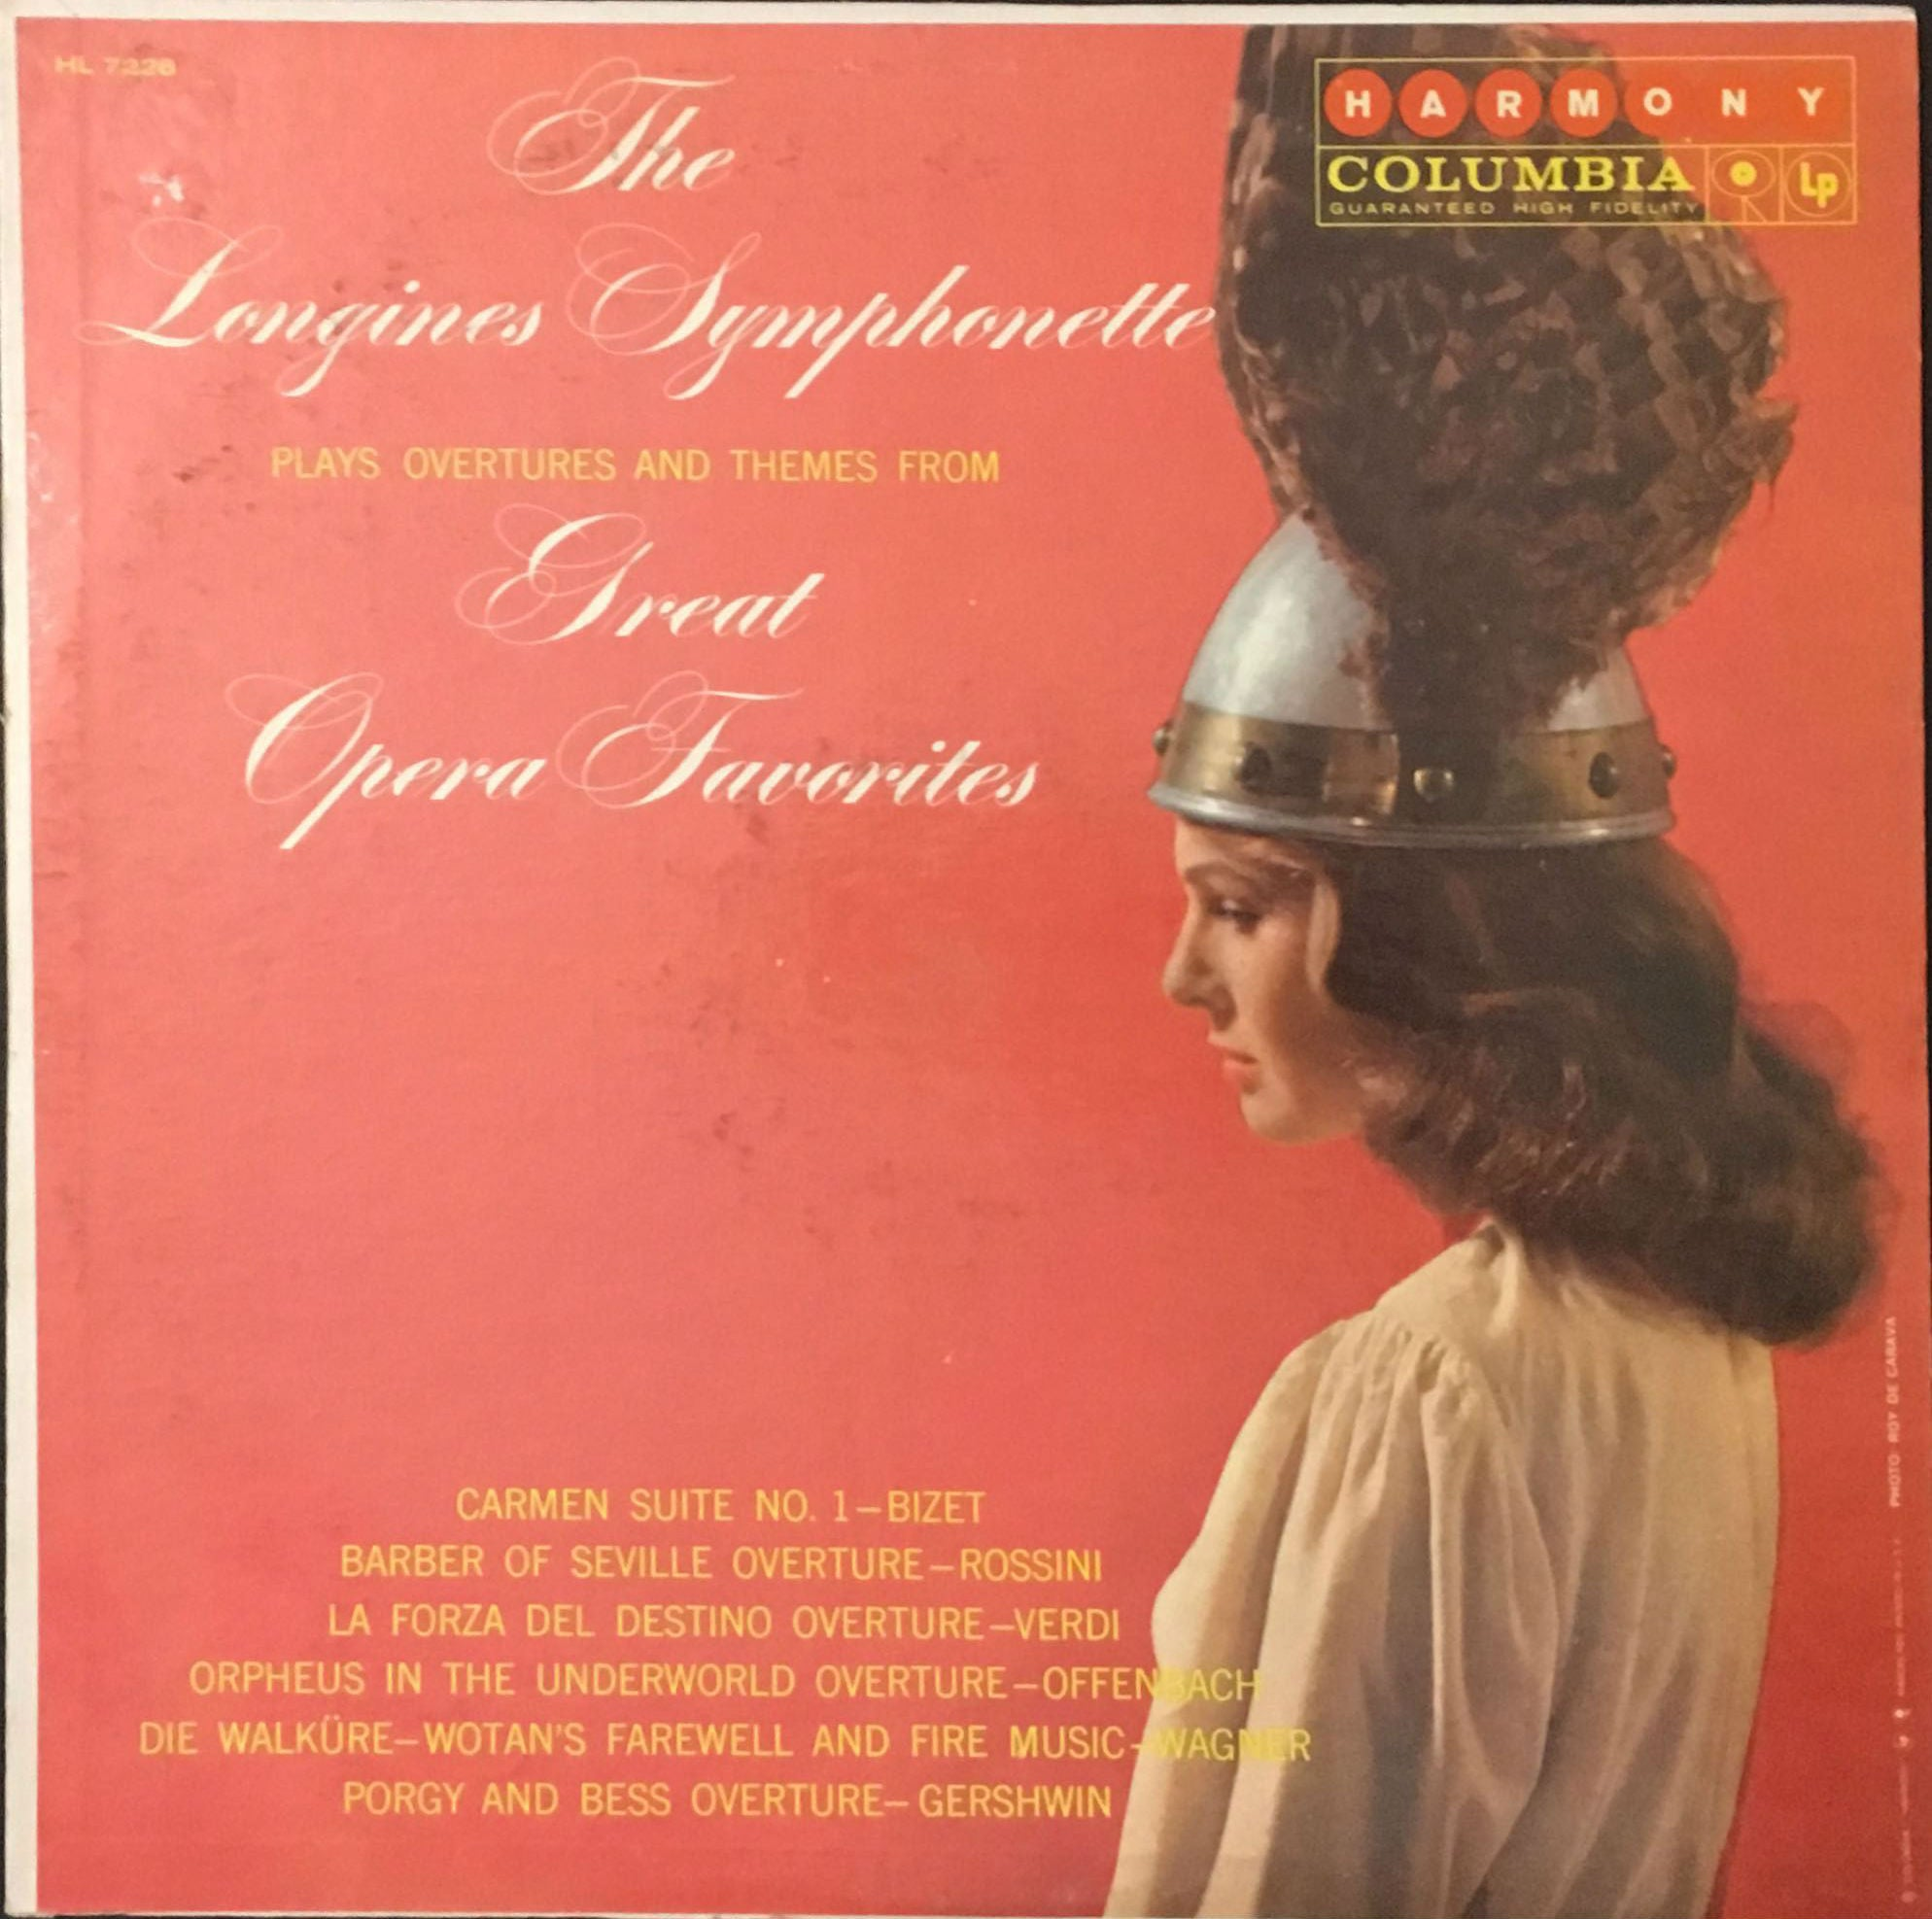 The Longines Symphonette Plays Overtures And Themes From